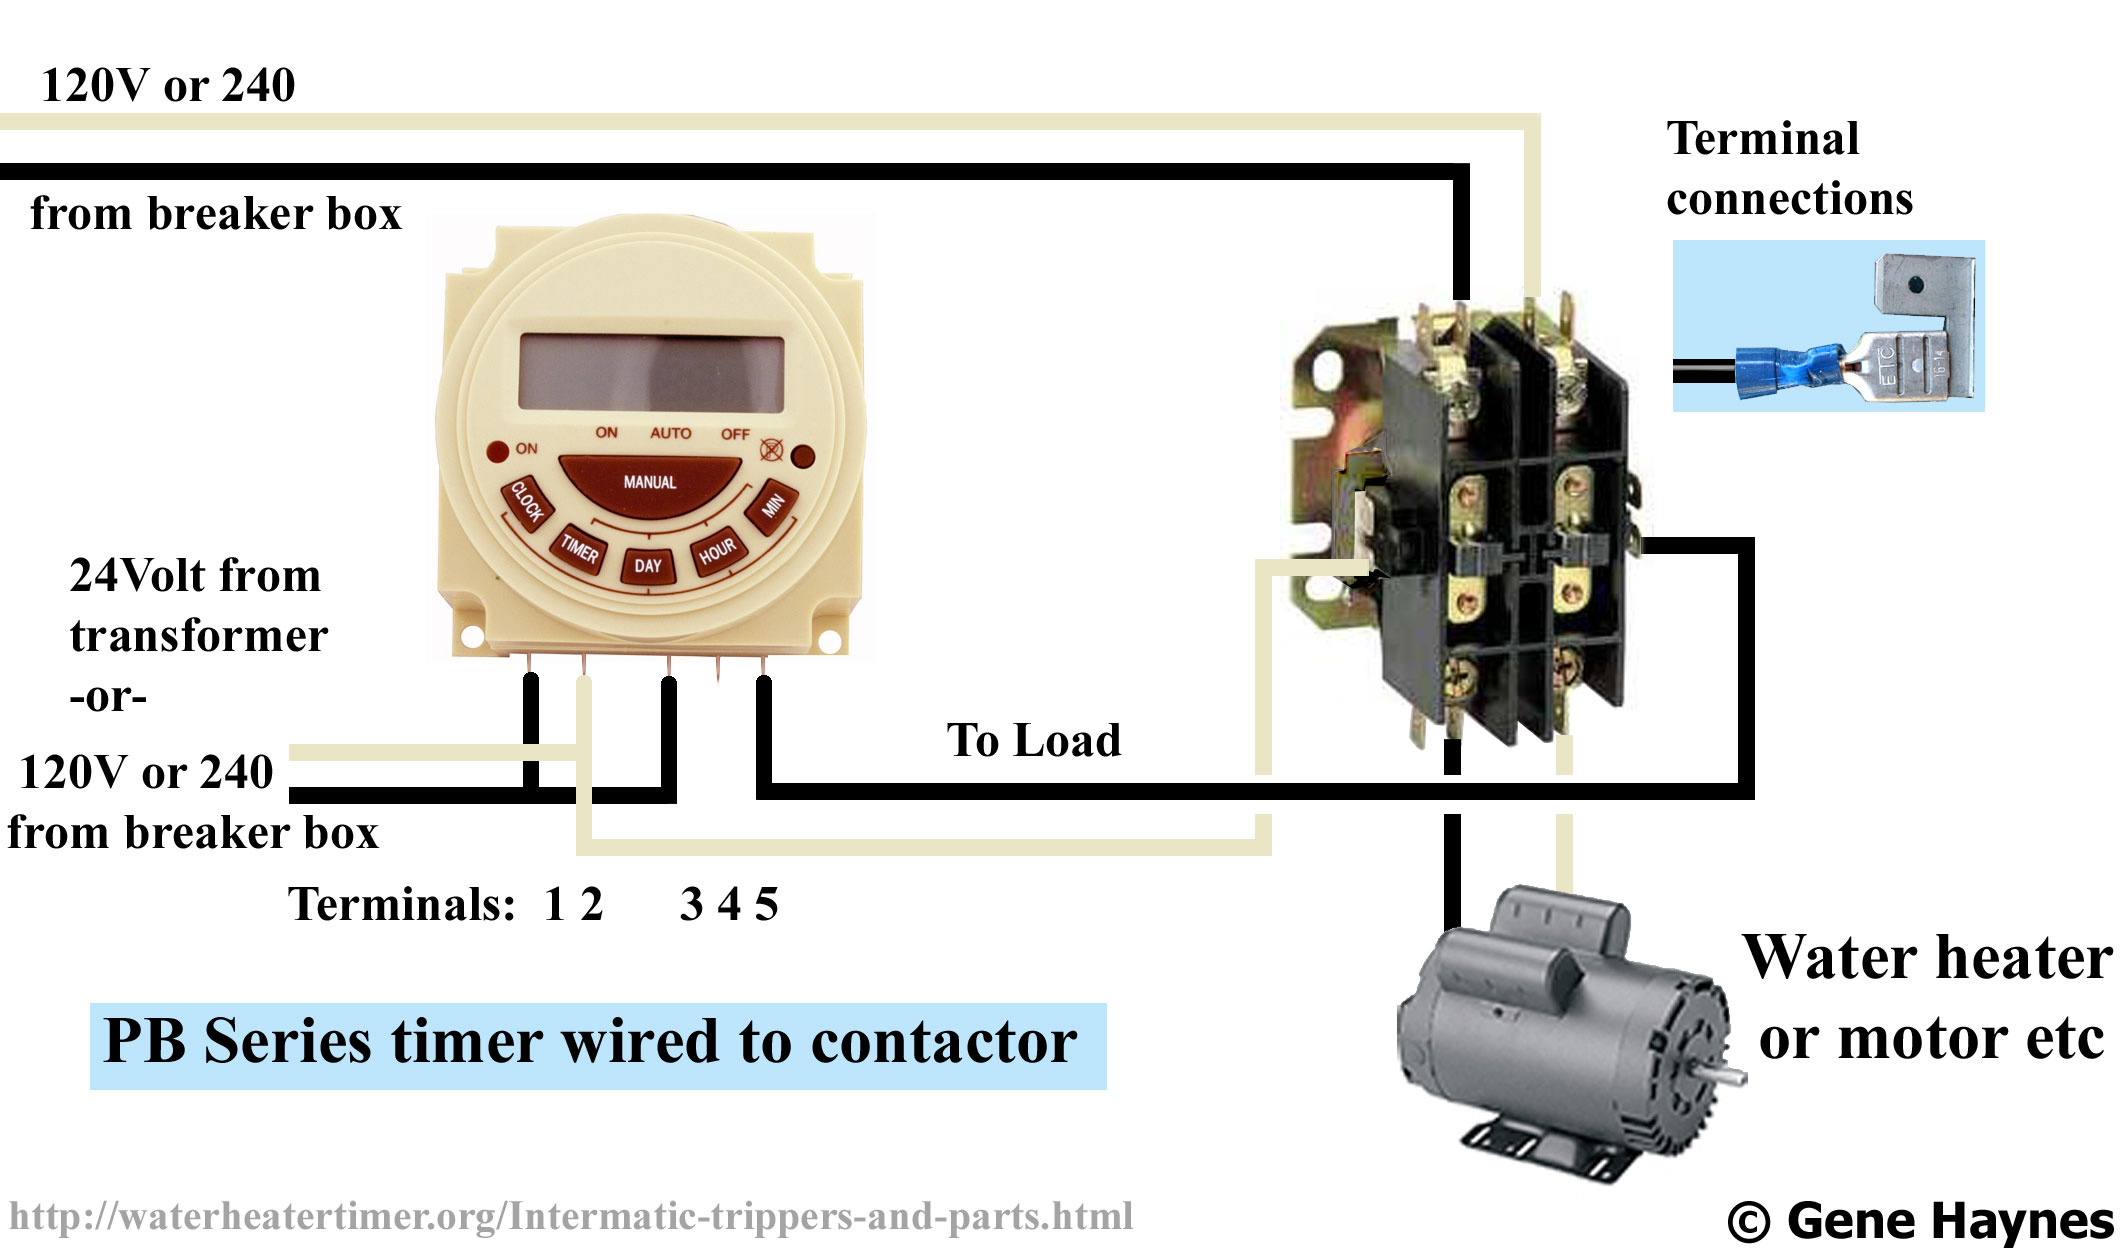 Contactors 8 Pole Dpdt Relay Wiring Diagram Connect Modular Timer To Contactor Pb Series Battery Operated Pool Spa 7 Programs Day 0r 24 Hour 120v Or 240v Spdt No Nc Buy 240 Volt